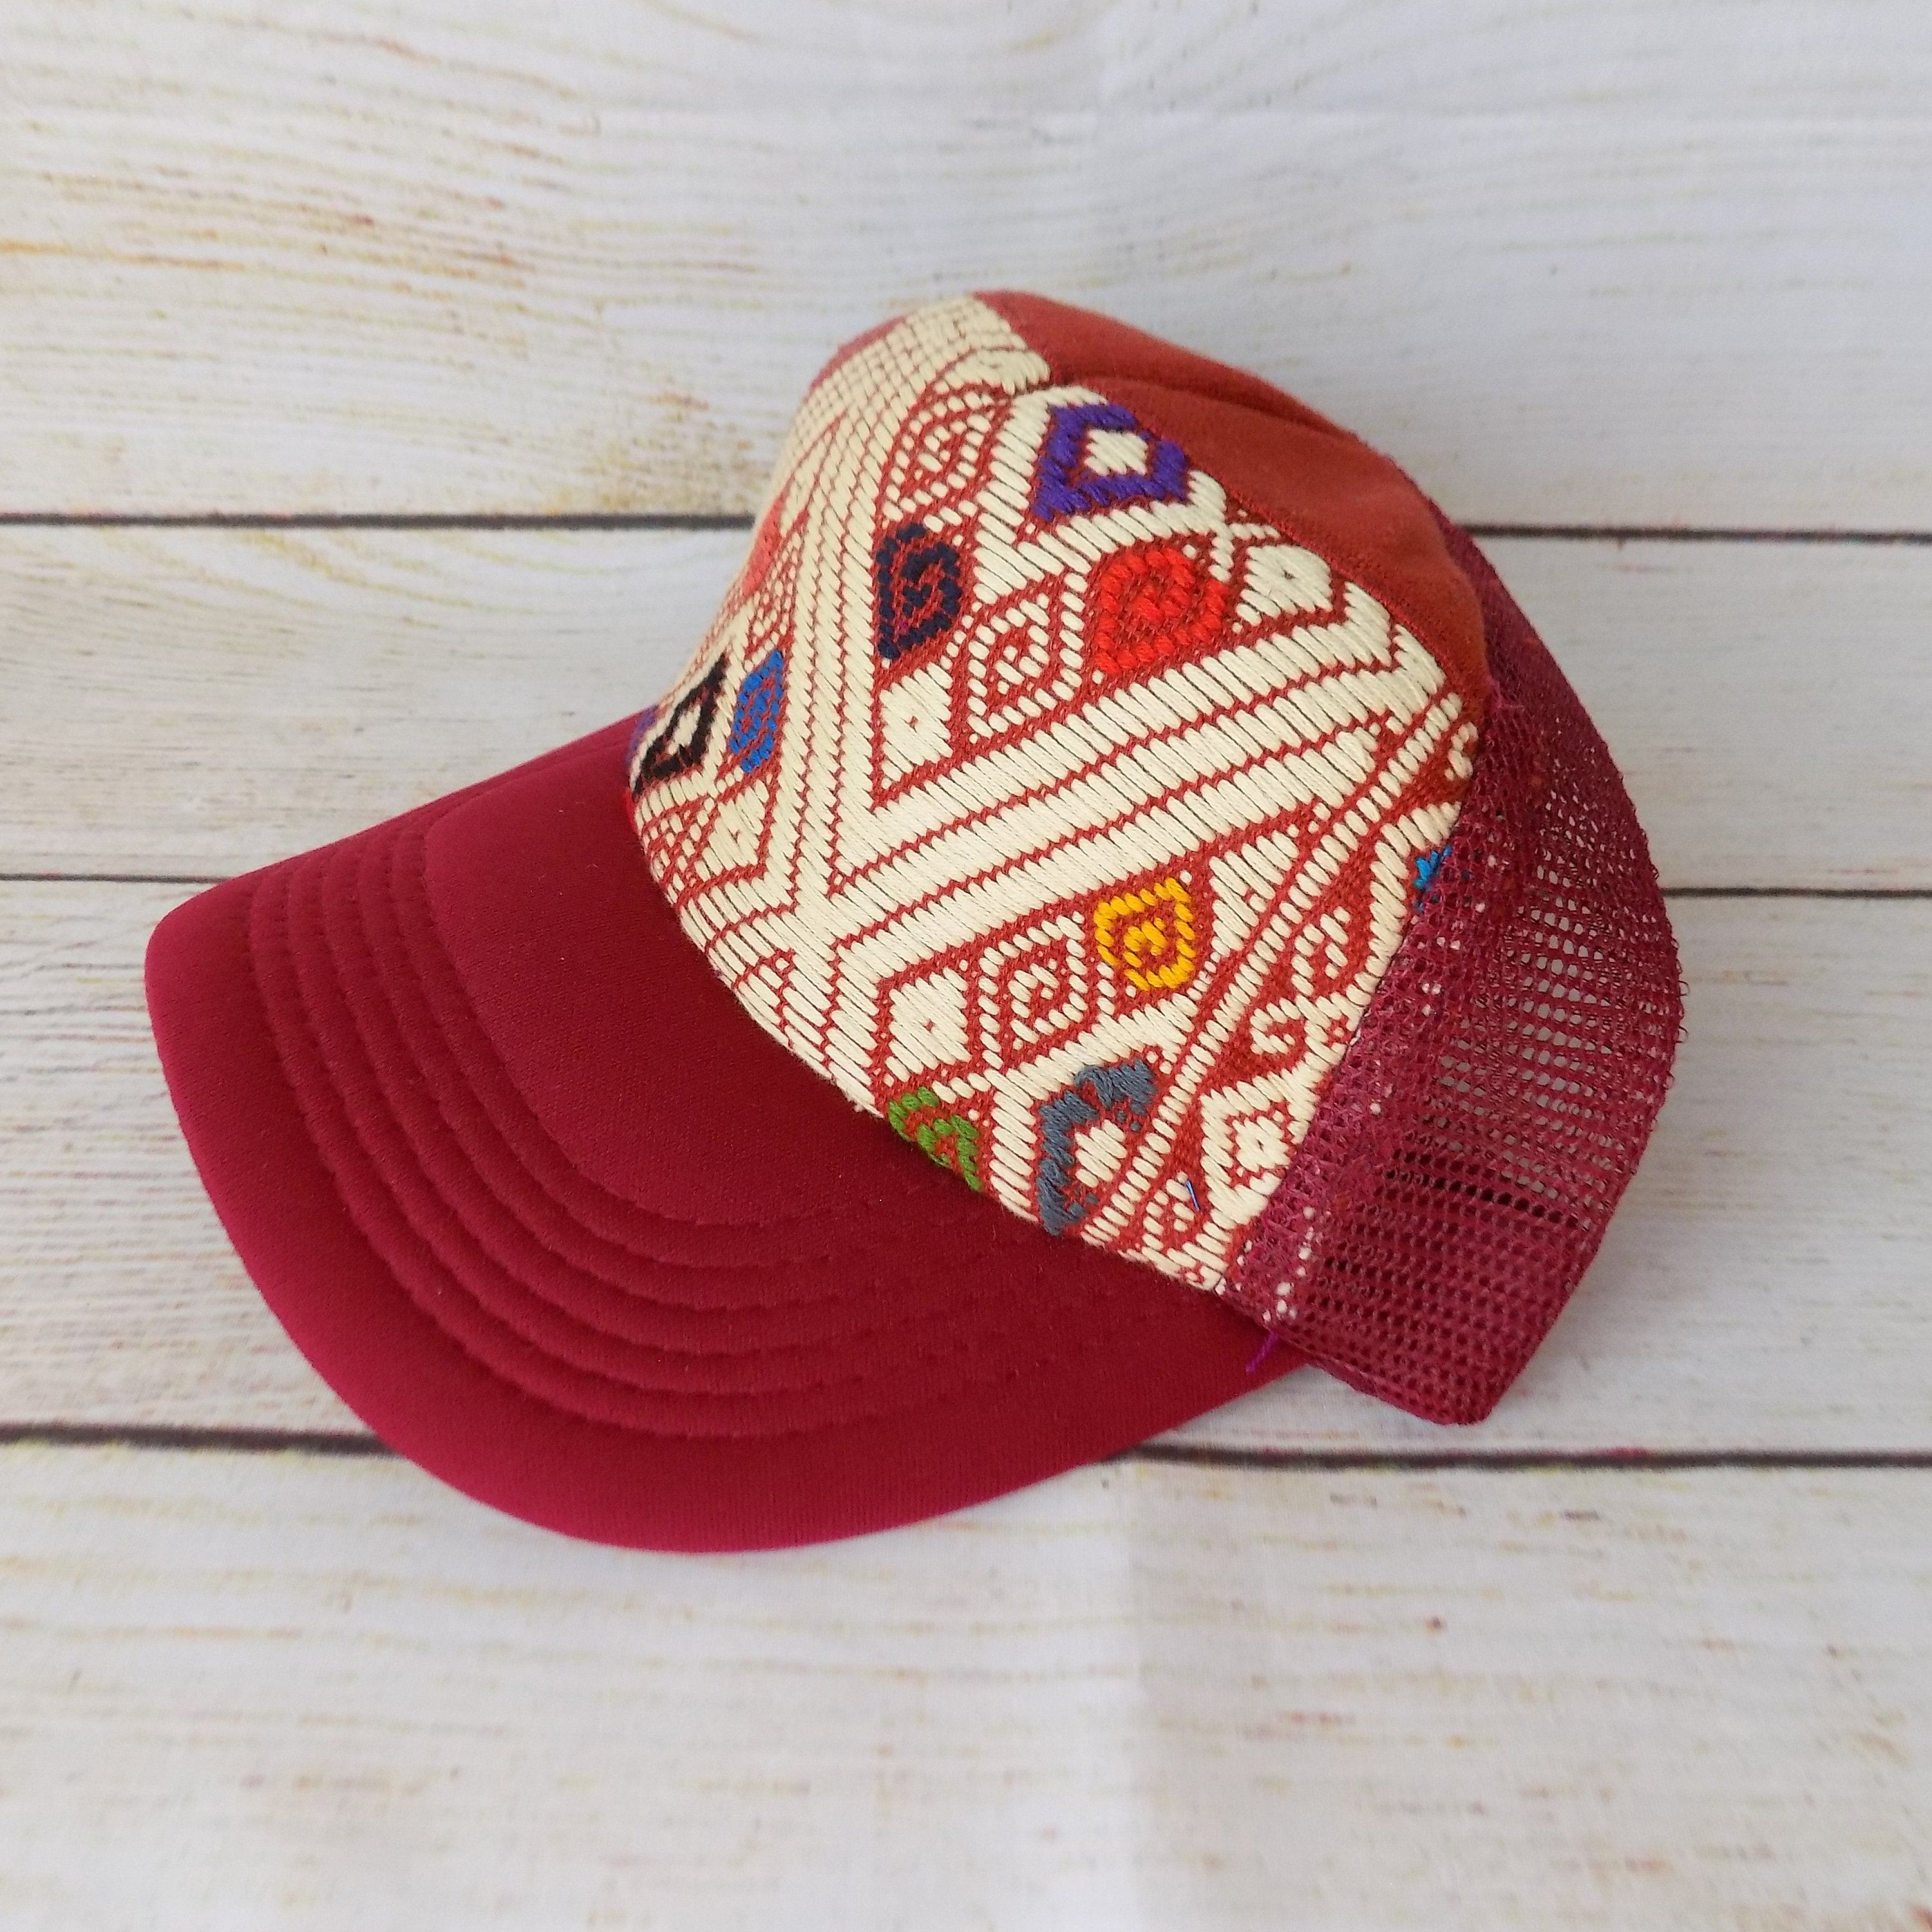 c3f57e05533 Mexican Embroidered Hat - Mexican Baseball Cap - Mexican Trucker Hat - Women  Trucker Hat - Mesh Cap - Embroidered Trucker Hat - Gift for Her by  DiscoverMas ...